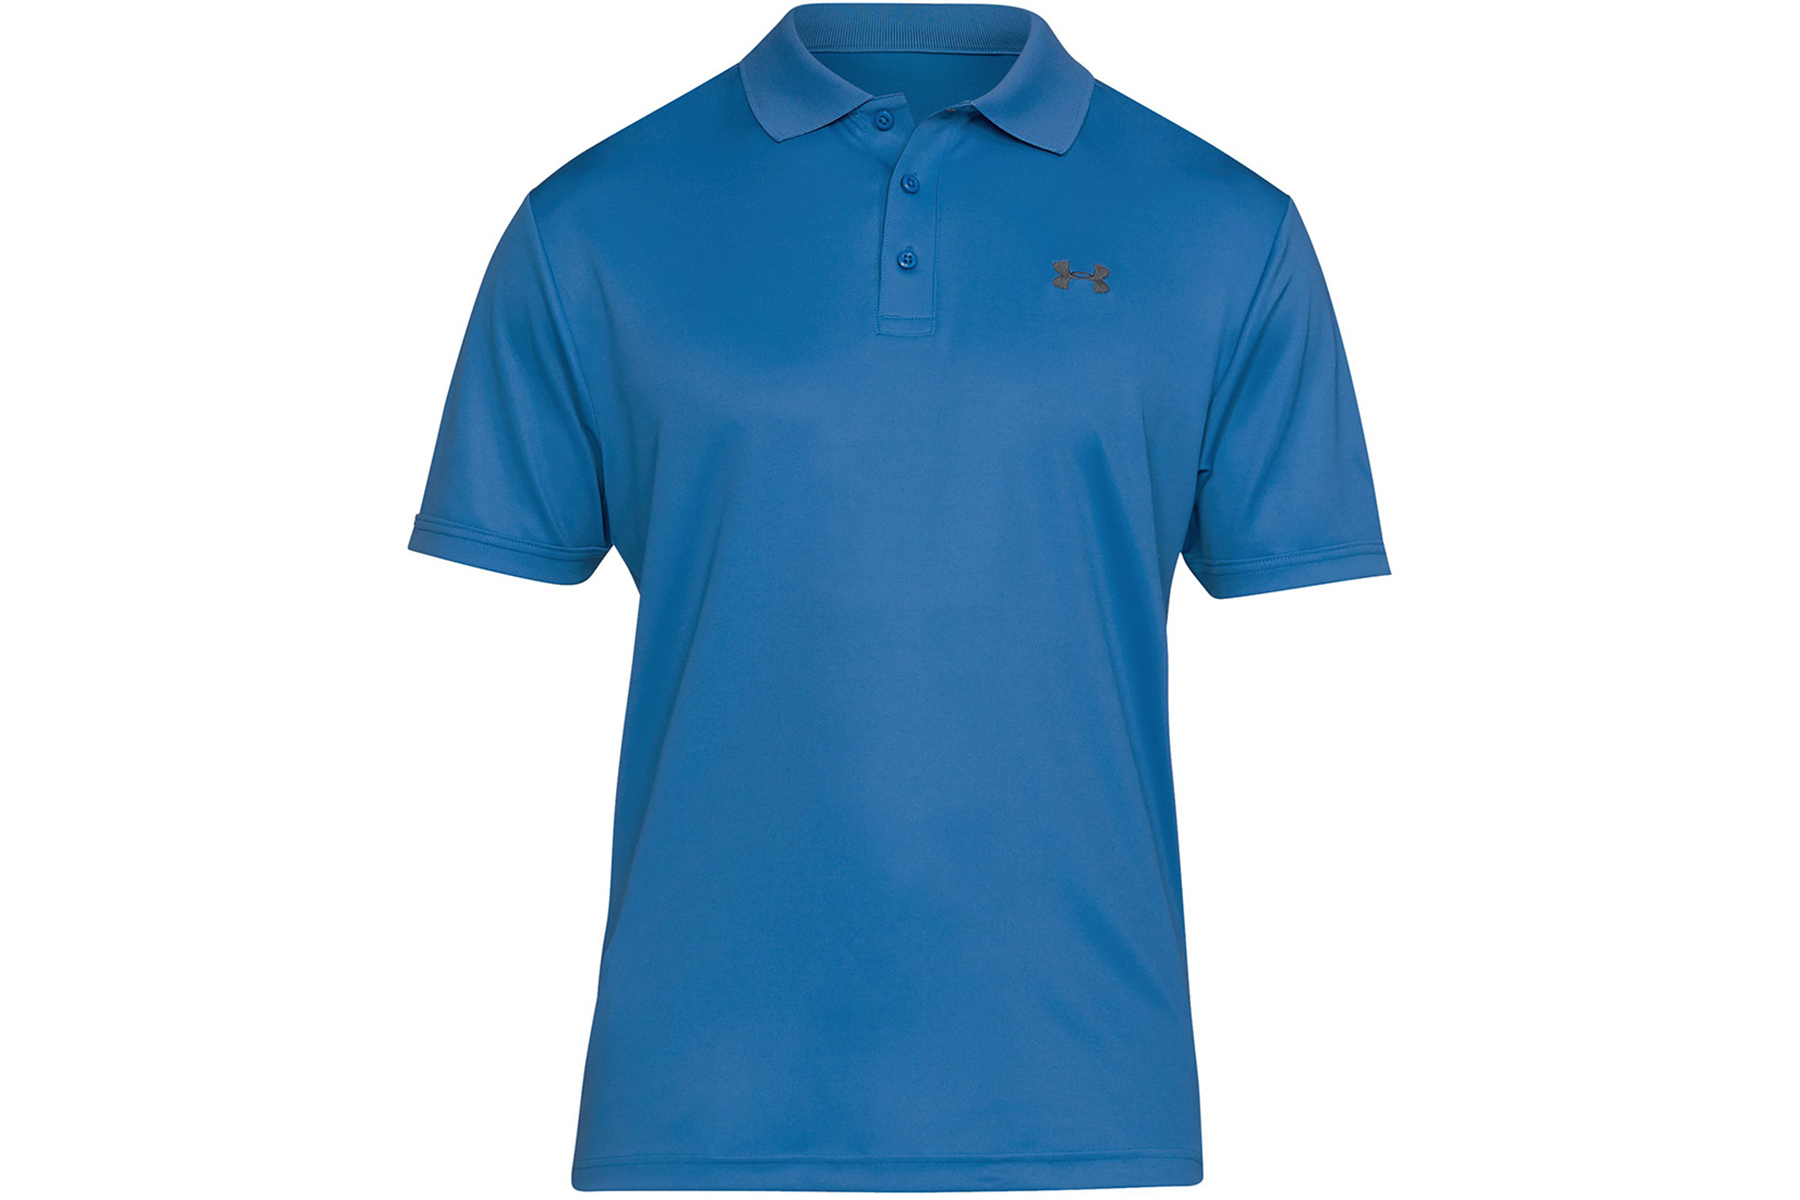 under armour performance polo shirt online golf. Black Bedroom Furniture Sets. Home Design Ideas